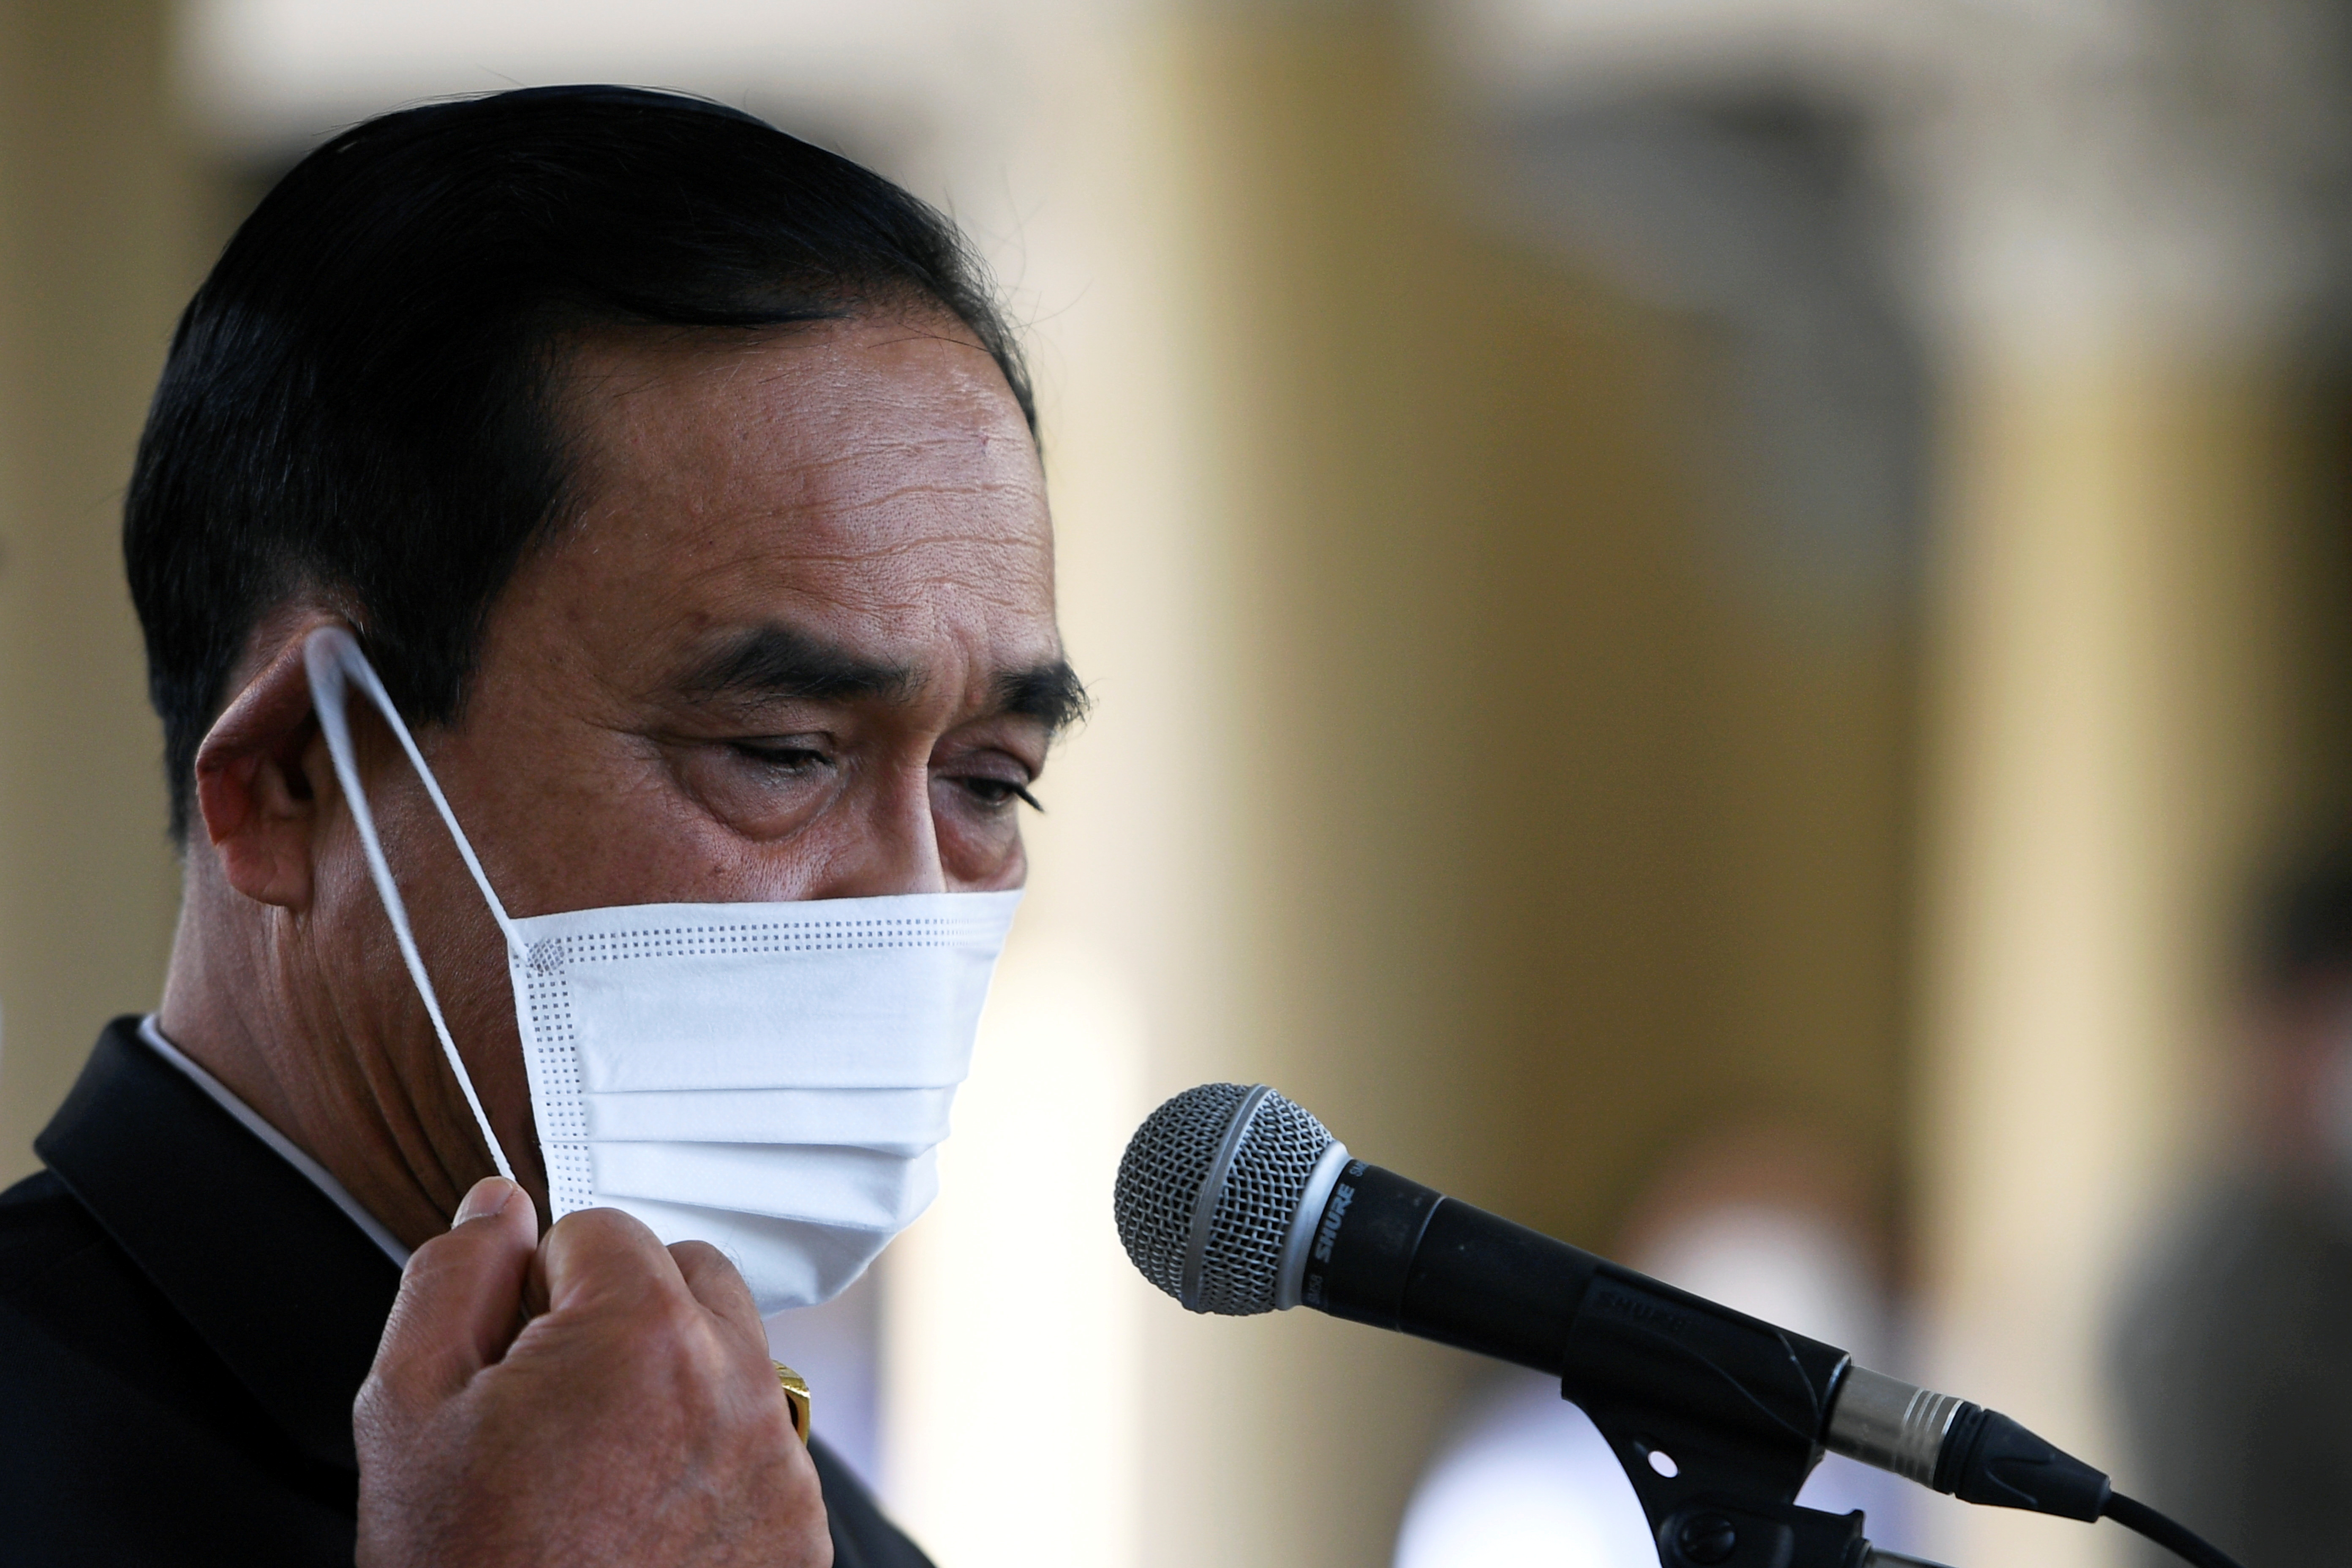 Thailand Prime Minister Prayuth Chan-ocha attends an agreement signing ceremony for purchase of AstraZeneca's potential COVID-19 vaccine at Government House, amid the spread of the coronavirus disease (COVID-19), in Bangkok, Thailand November 27, 2020. REUTERS/Chalinee Thirasupa